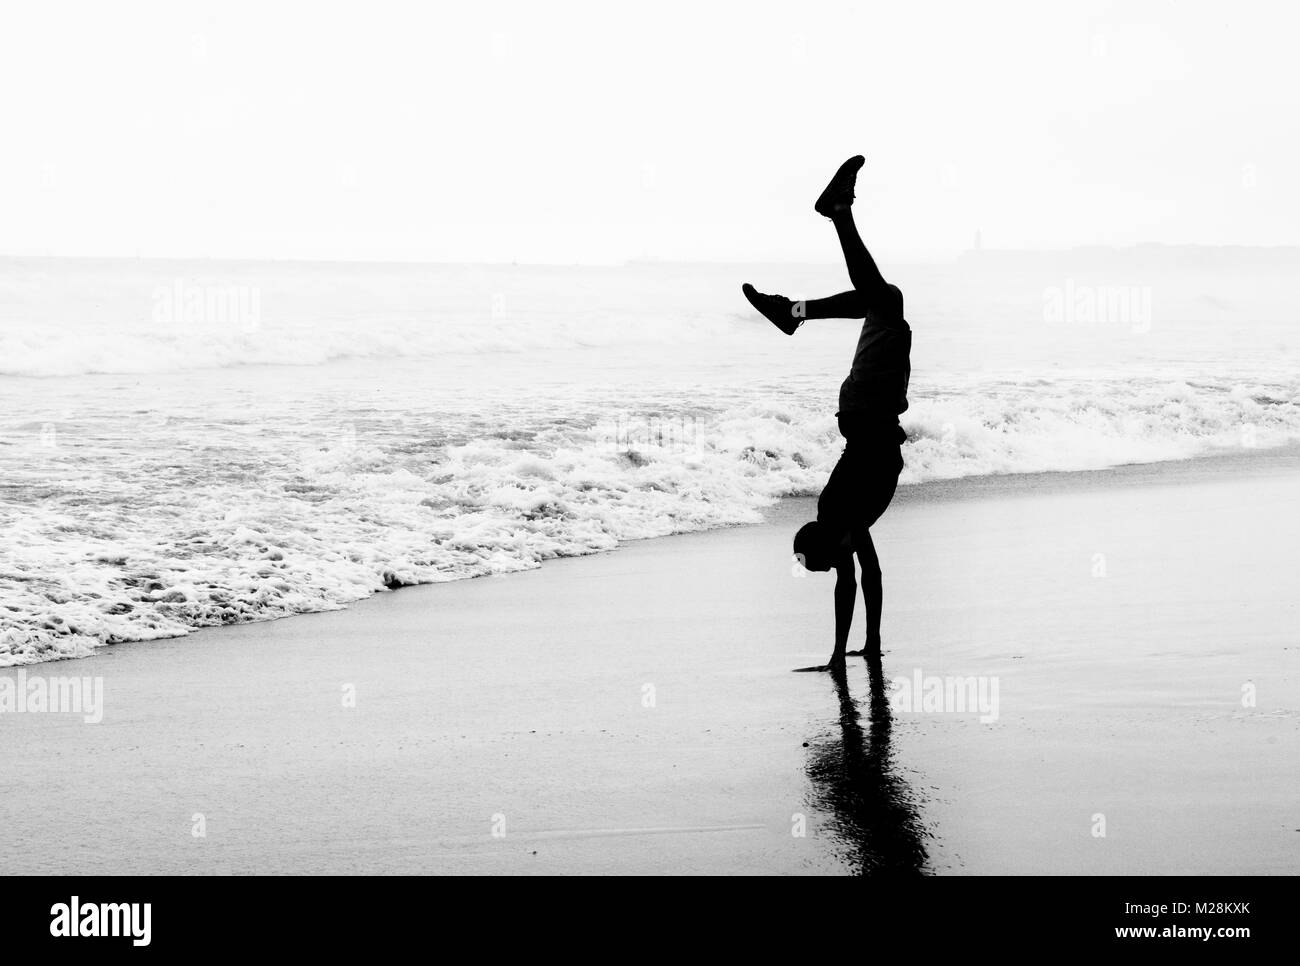 Headstand on a beach in Ghana - Stock Image